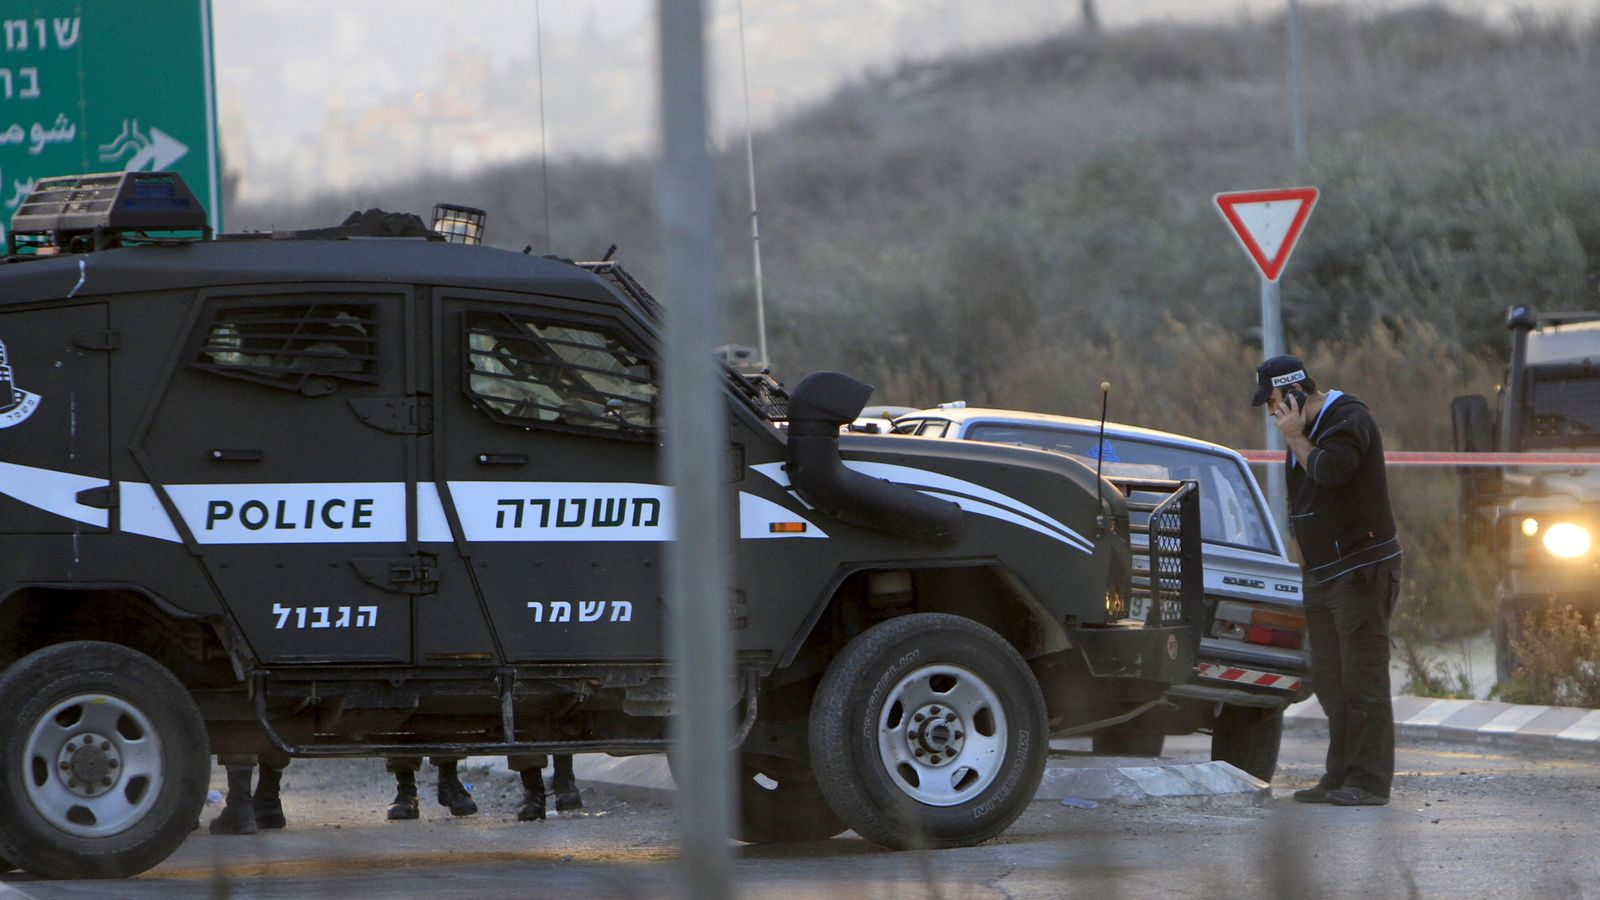 Man arrested by Israeli police after writing 'good morning' on Facebook